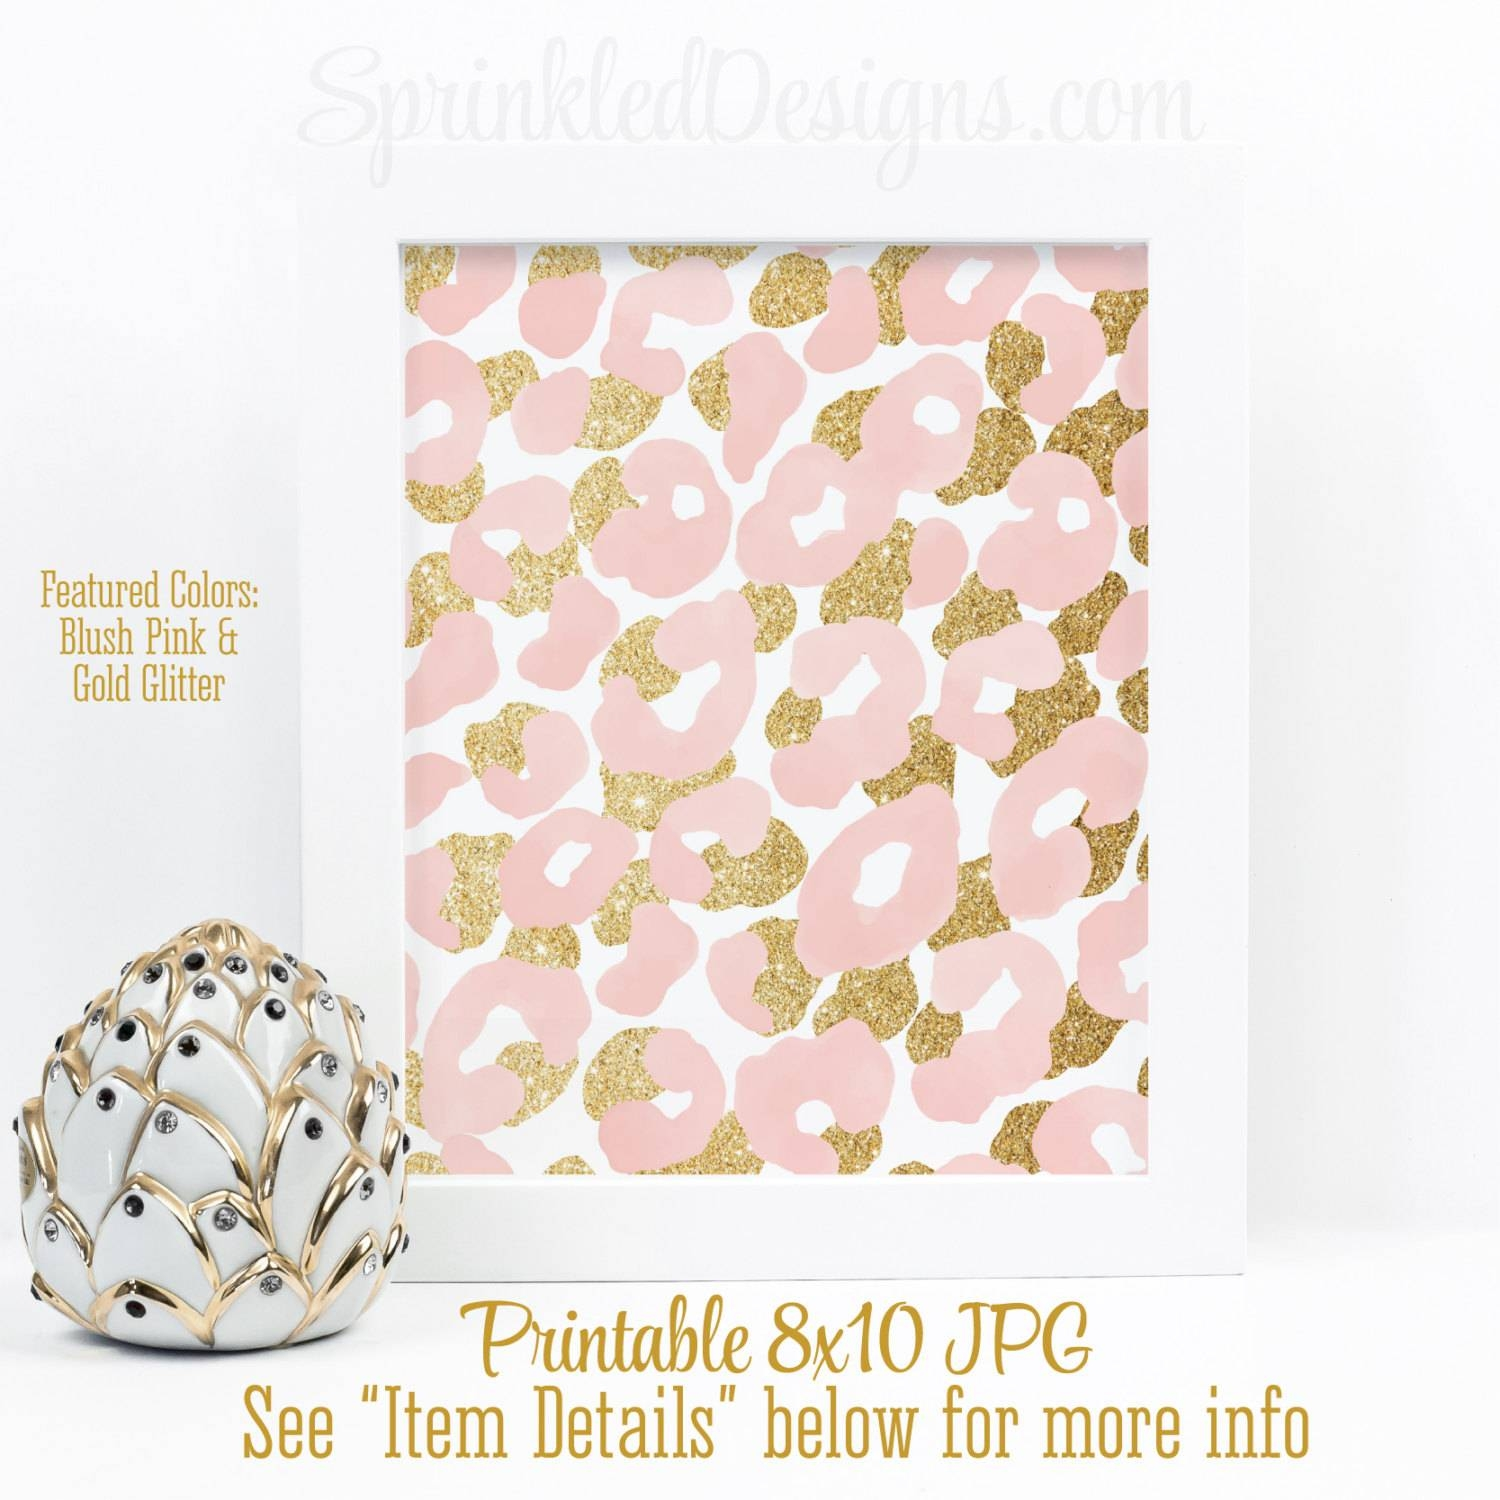 Abstract Art Print Blush Pink Gold Glitter Watercolor Pertaining To Newest Leopard Print Wall Art (View 2 of 25)